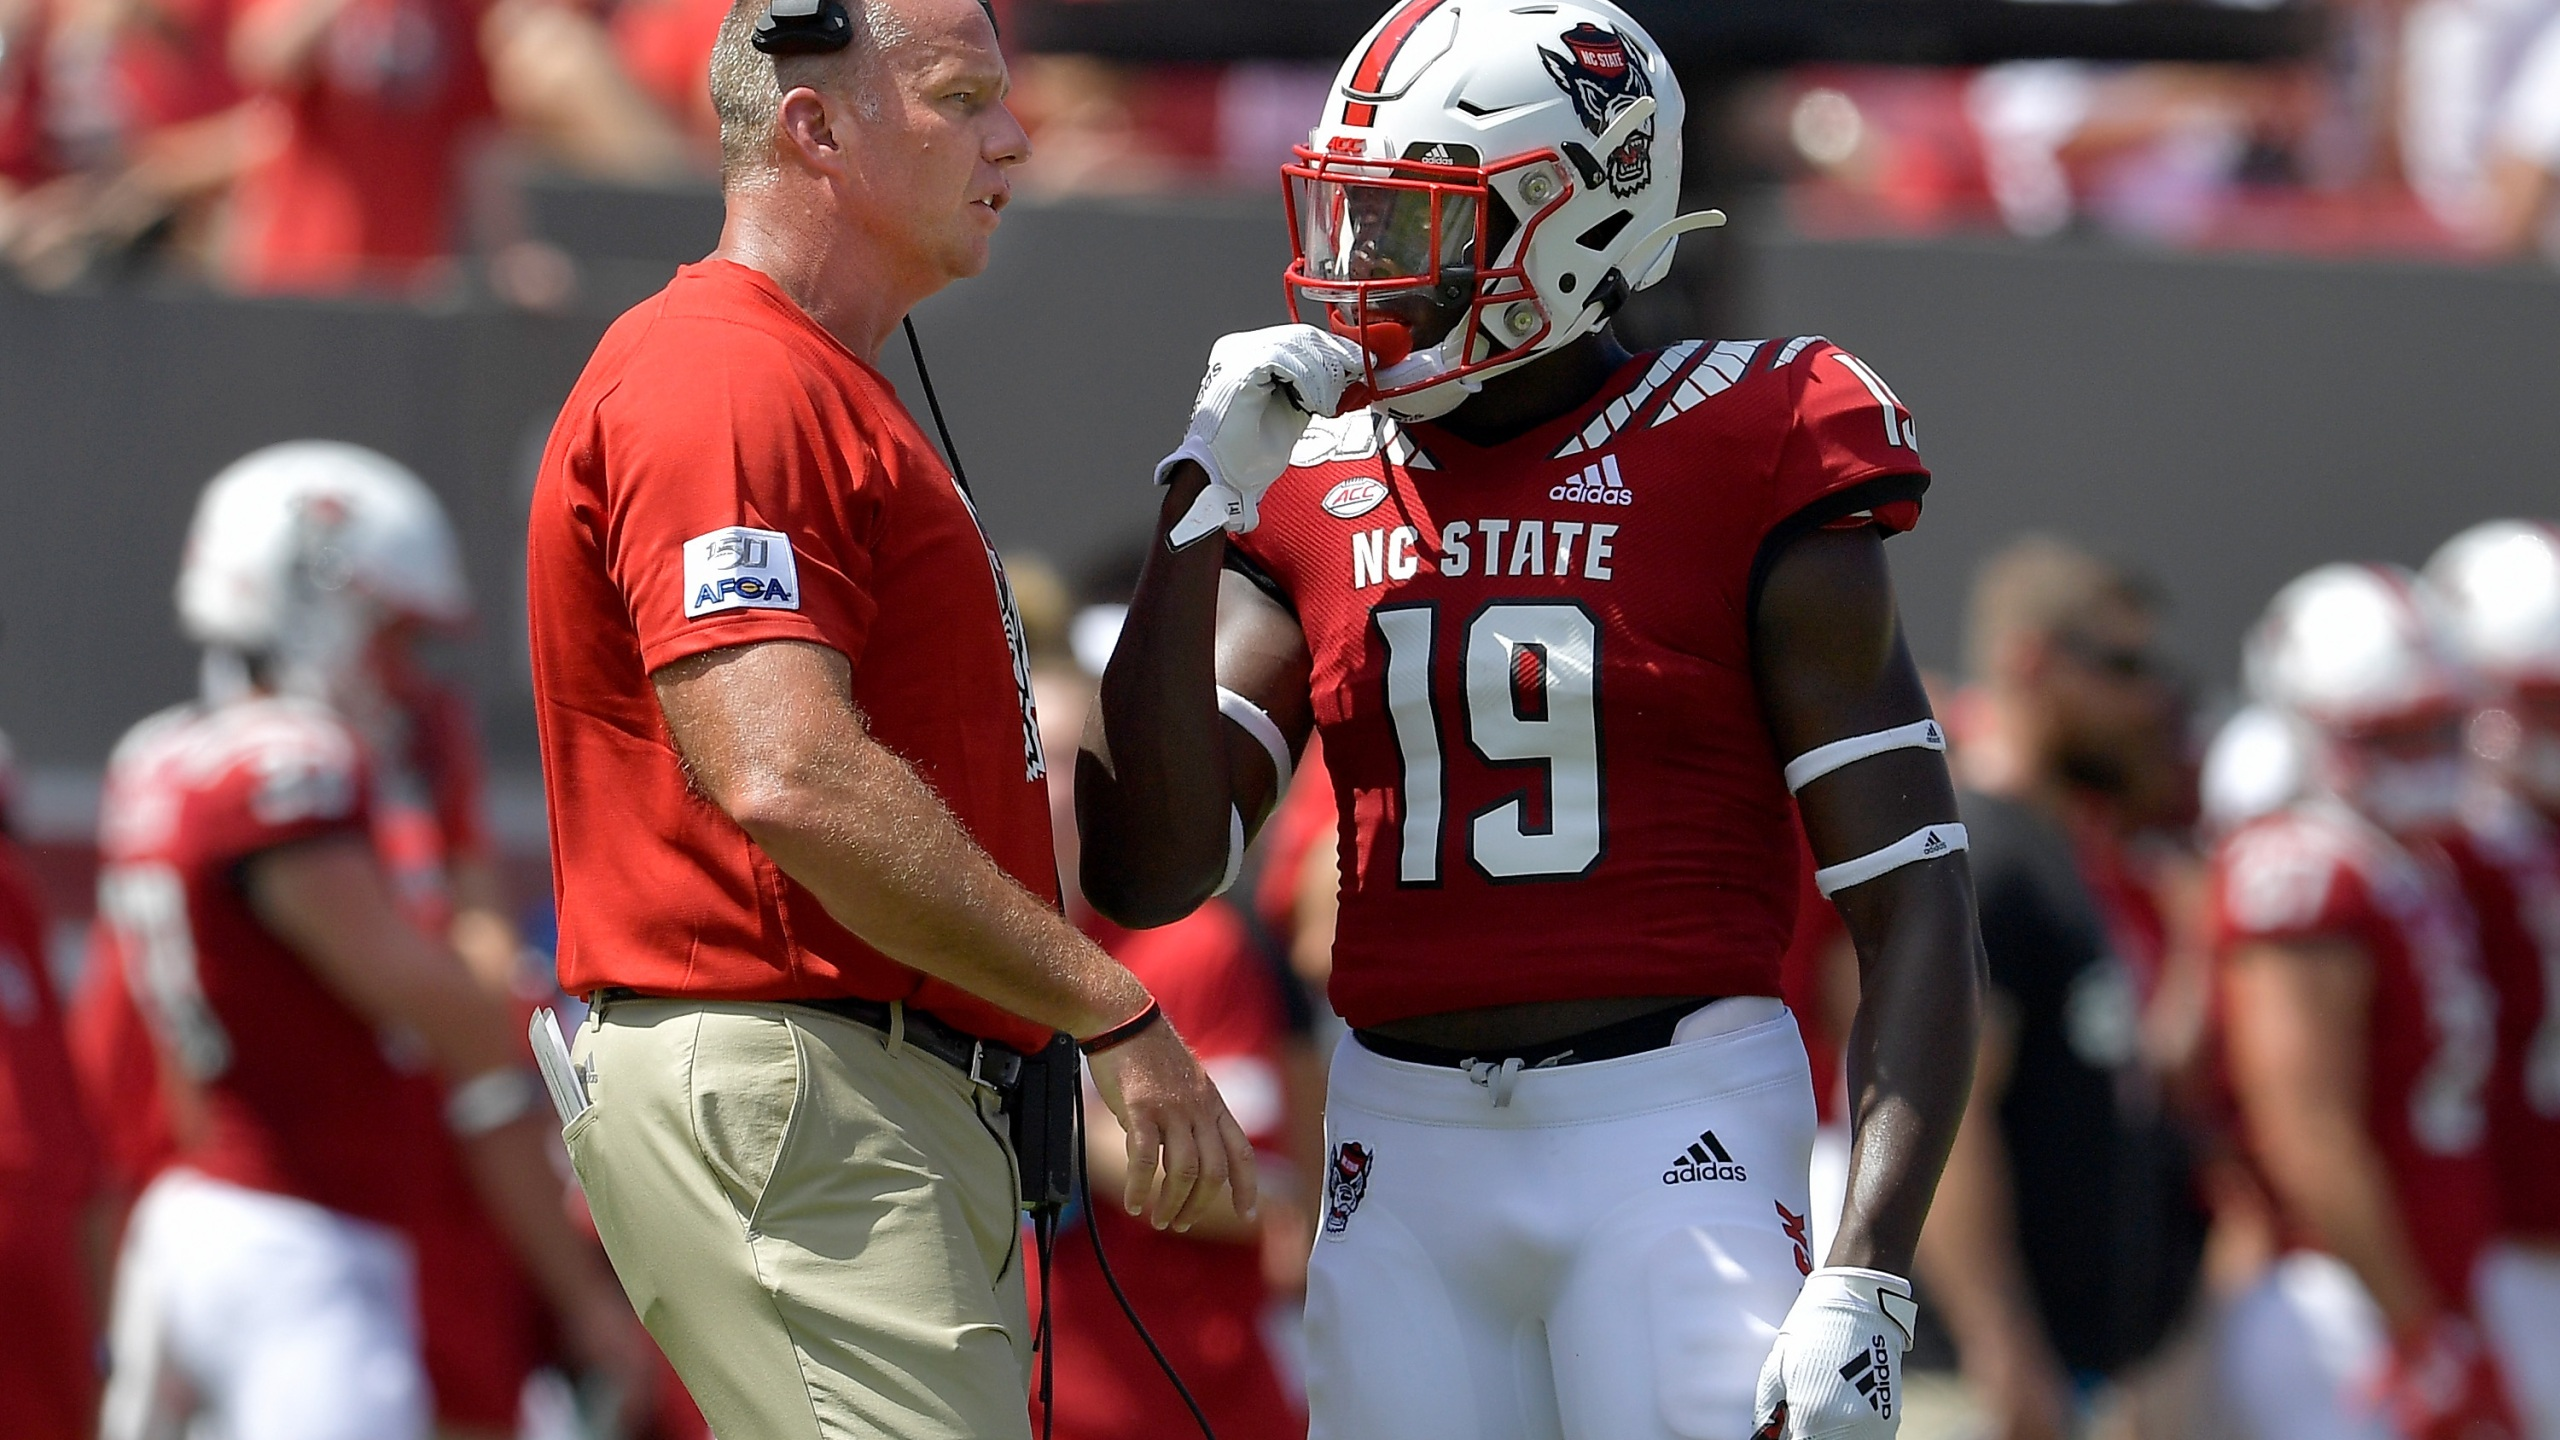 NC State receiver CJ Riley out for season with knee injury